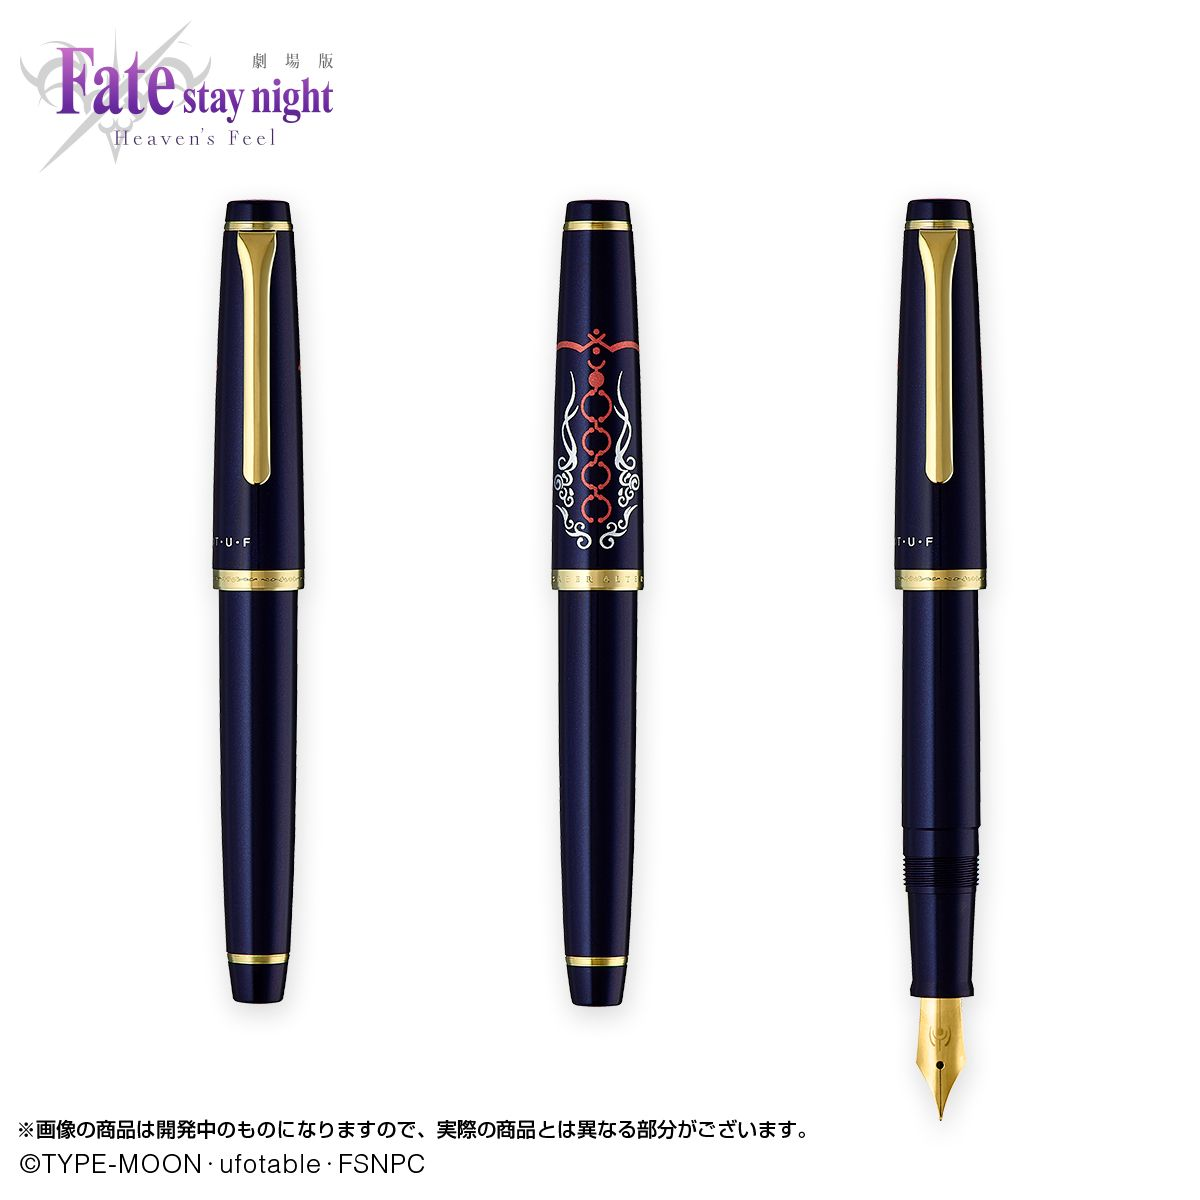 Fate/stay night Fountain Pen | MANGA.TOKYO Anime Merchandise Monday (January 2019) (C)TYPE-MOON・ufotable・FSNPC